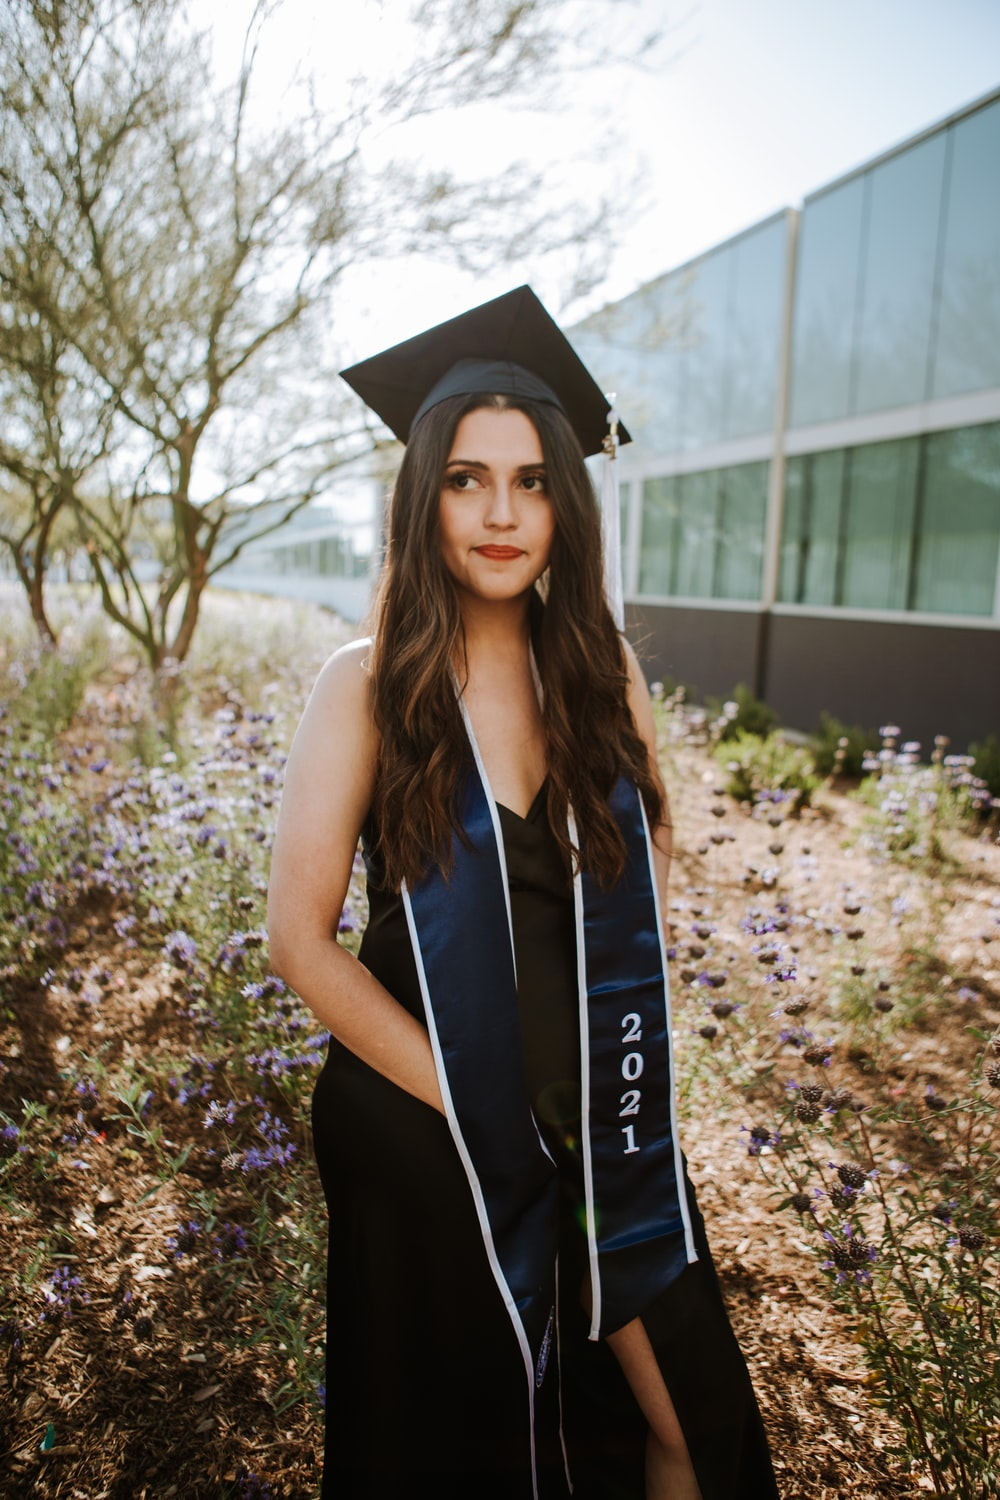 woman in black academic dress wearing black academic hat standing near green leaf trees during daytime